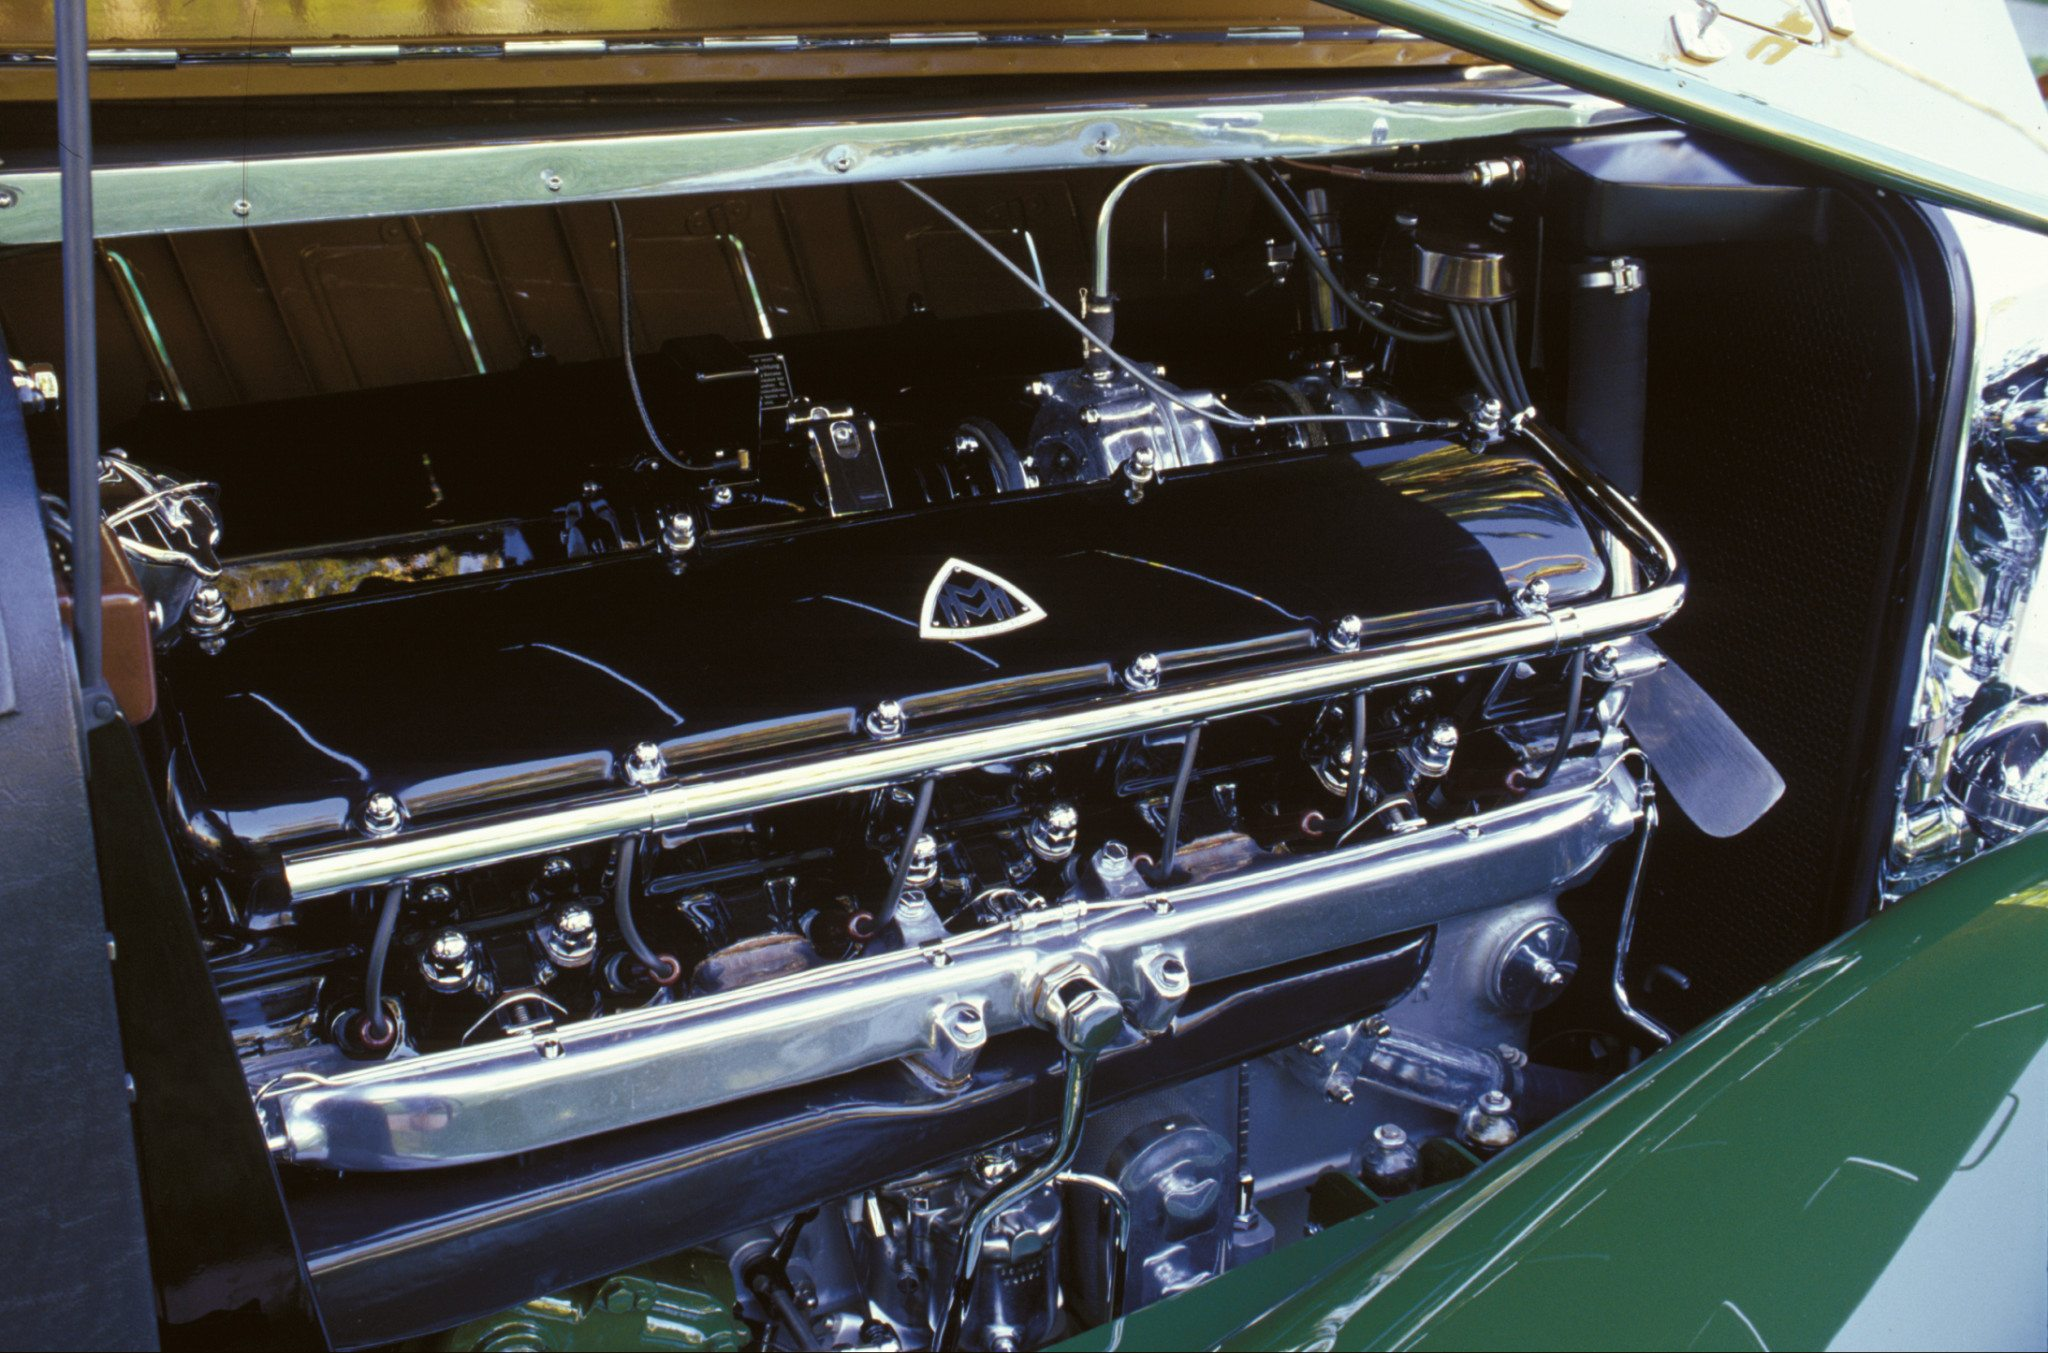 1932 Maybach Zeppelin DS8 V12 Engine